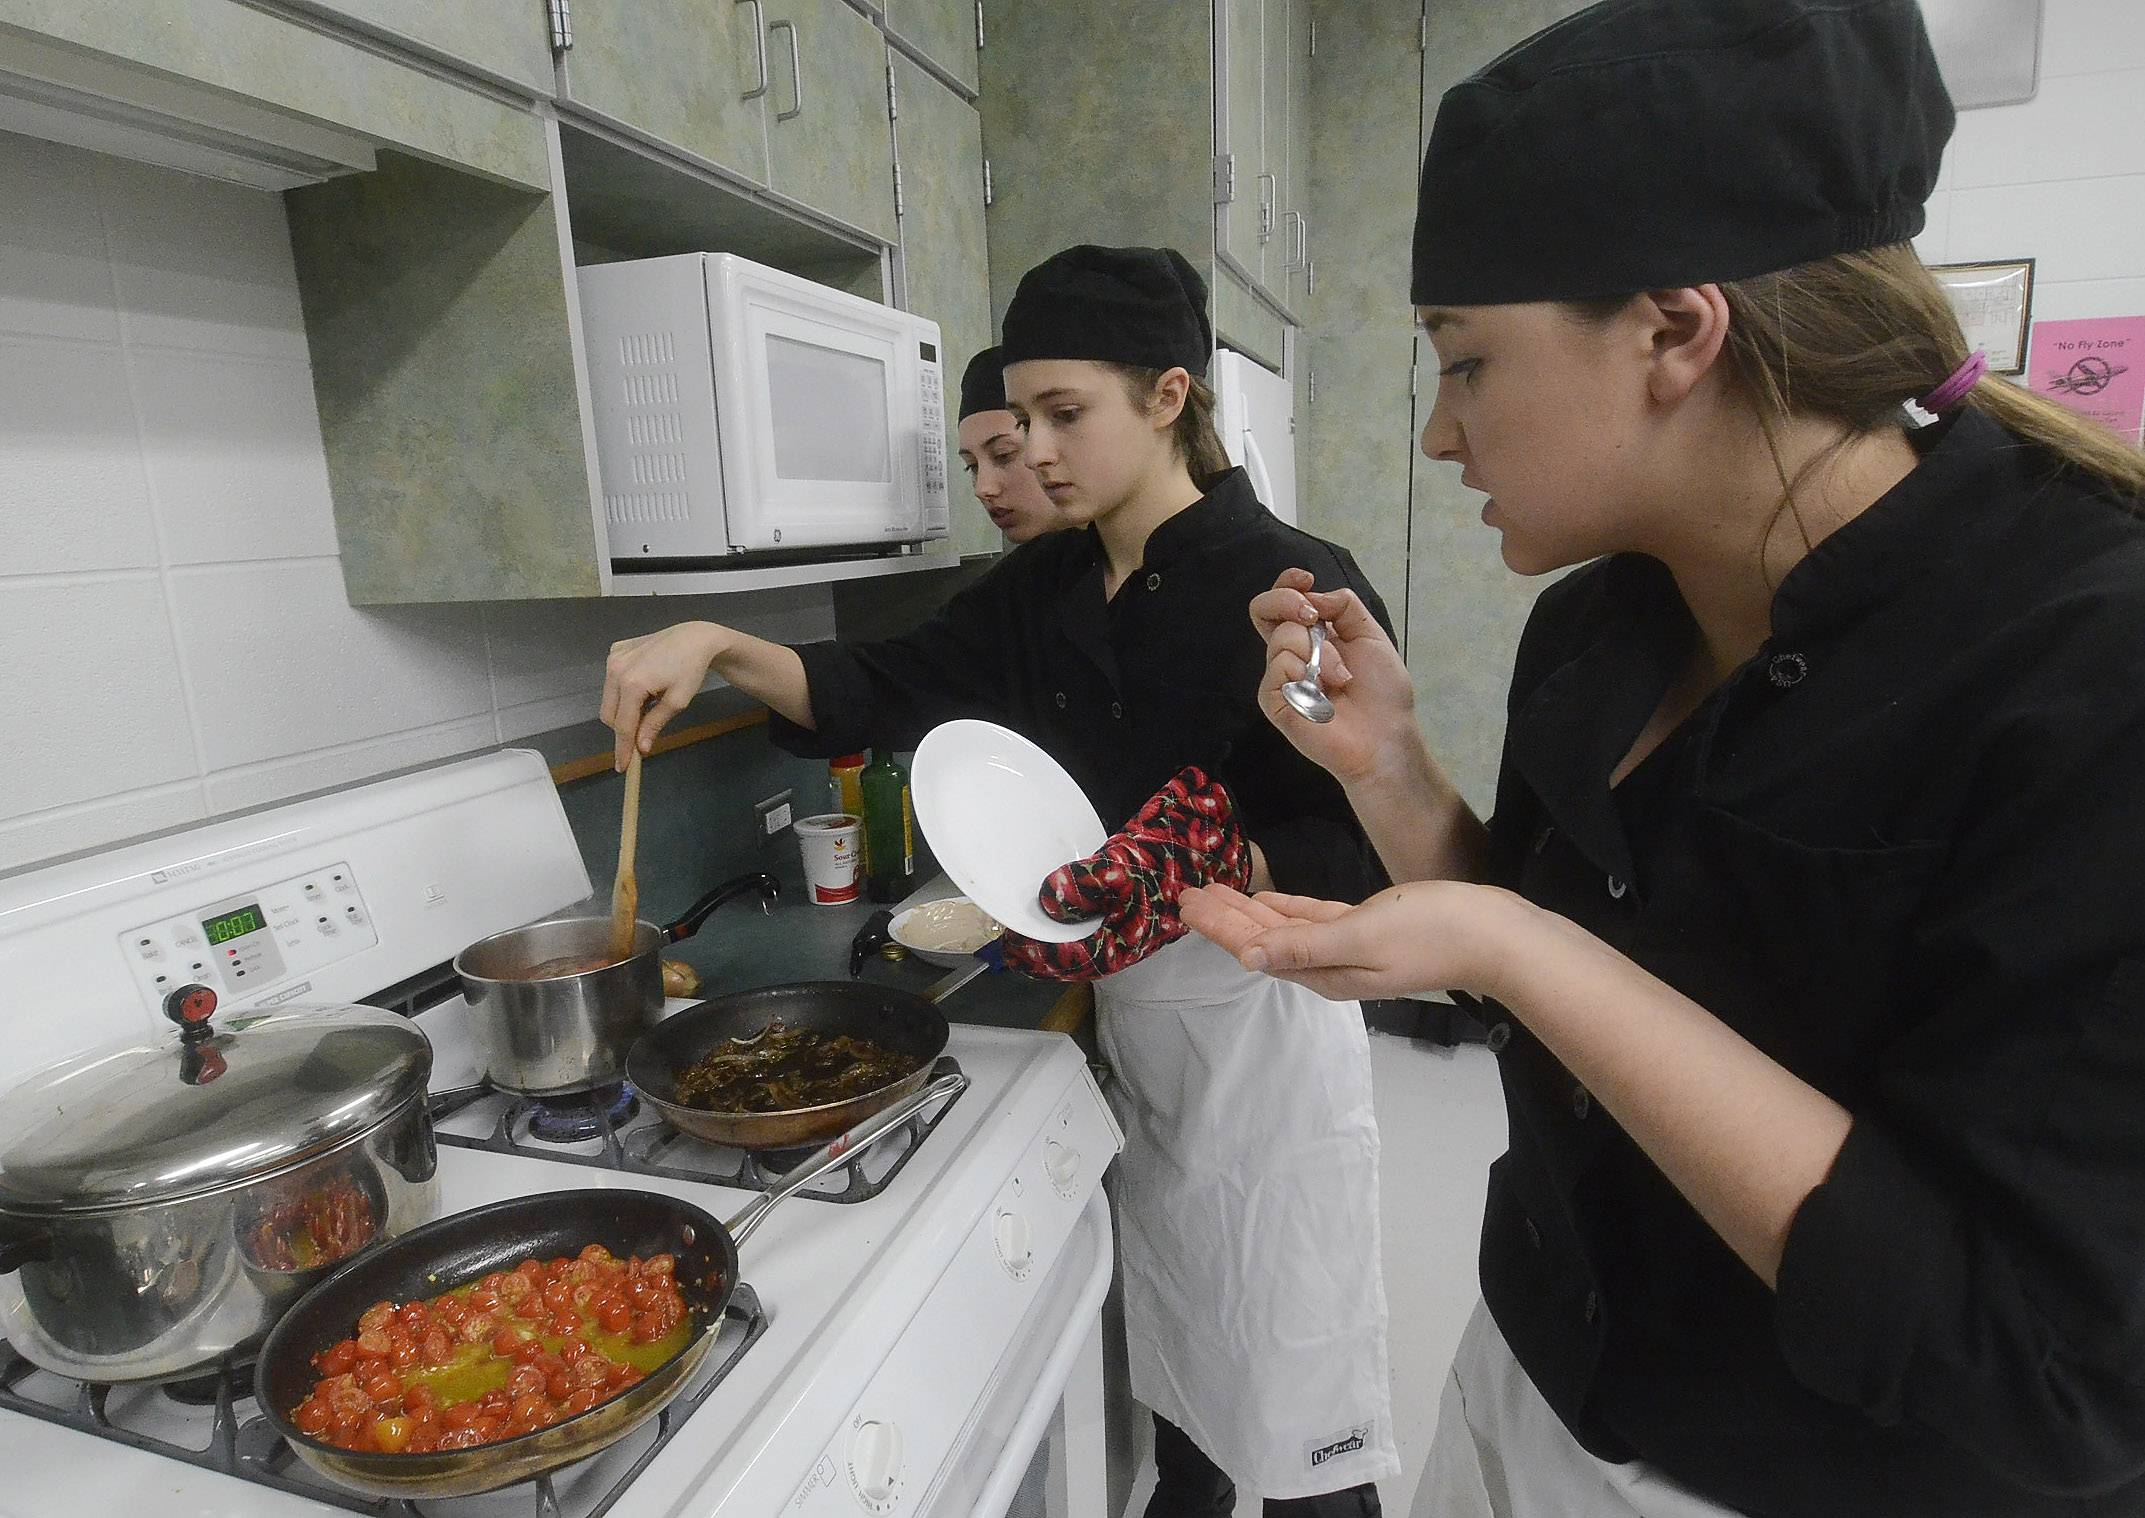 ProStart Team 6 members from left, Tayler Merkel, Madi Woltman and Gina Cirrincione work on their pasta dish during Elk Grove High School's ProStart vs. Faculty Cook-off.